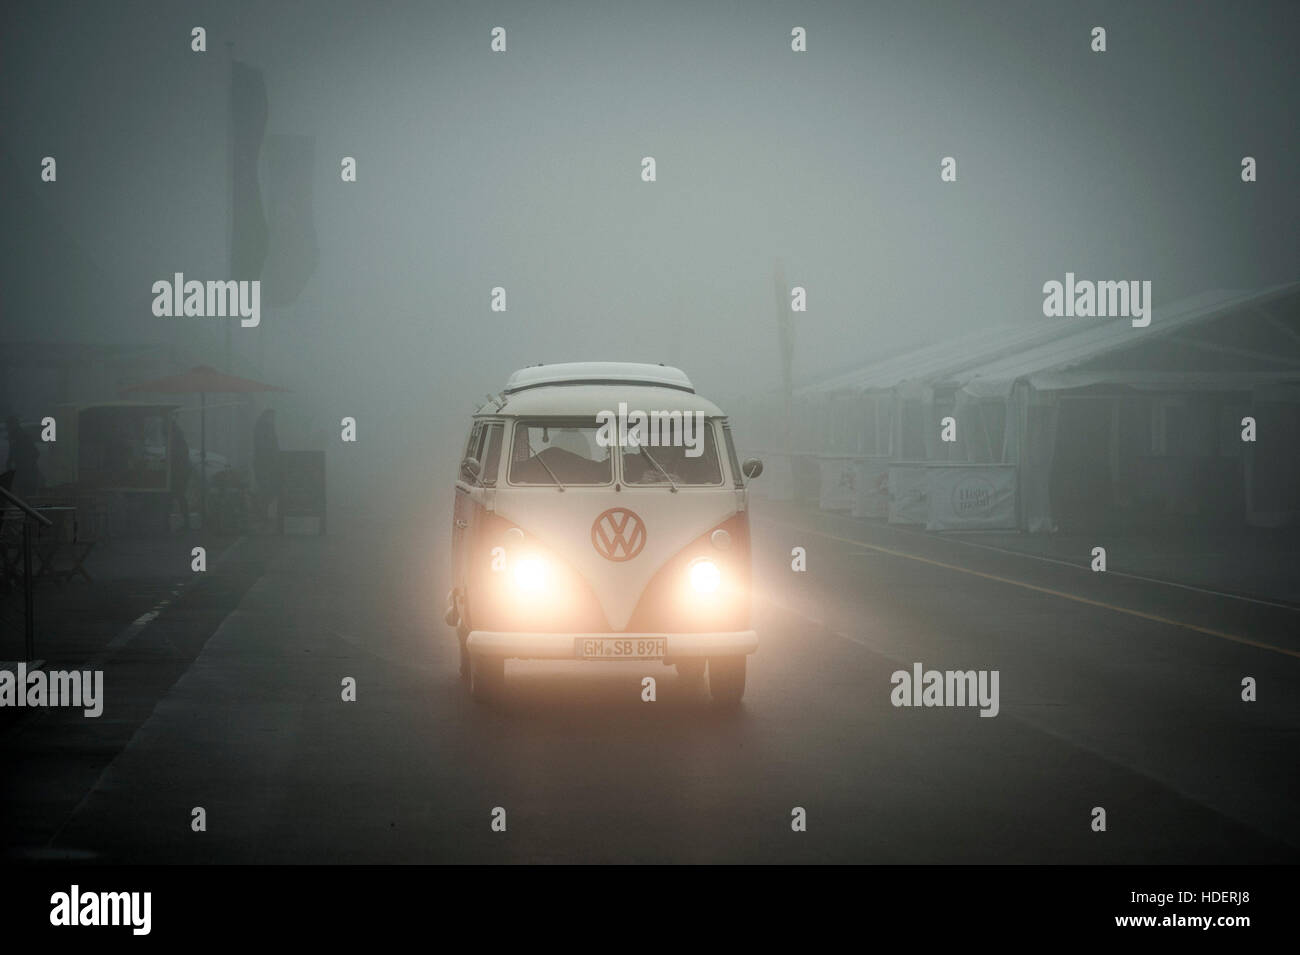 VW Bus - Foggy Weather - Stock Image